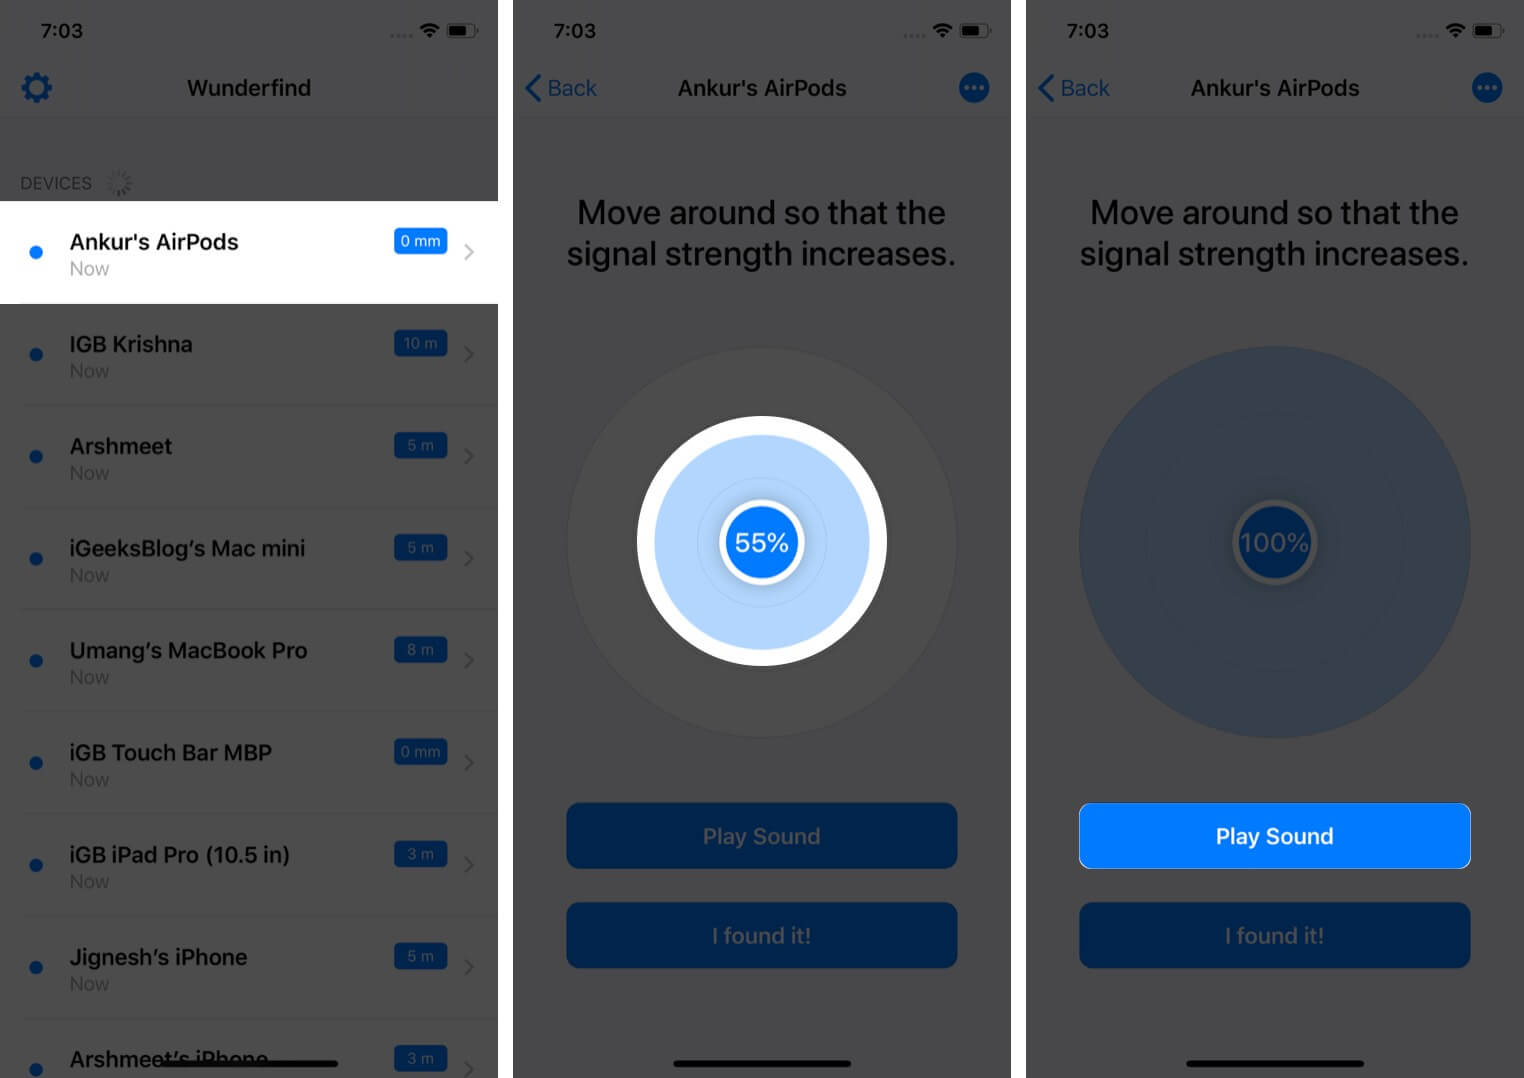 Launch Wunderfind App and Tap on AirPods Name and Then Tap on Play Sound on iPhone